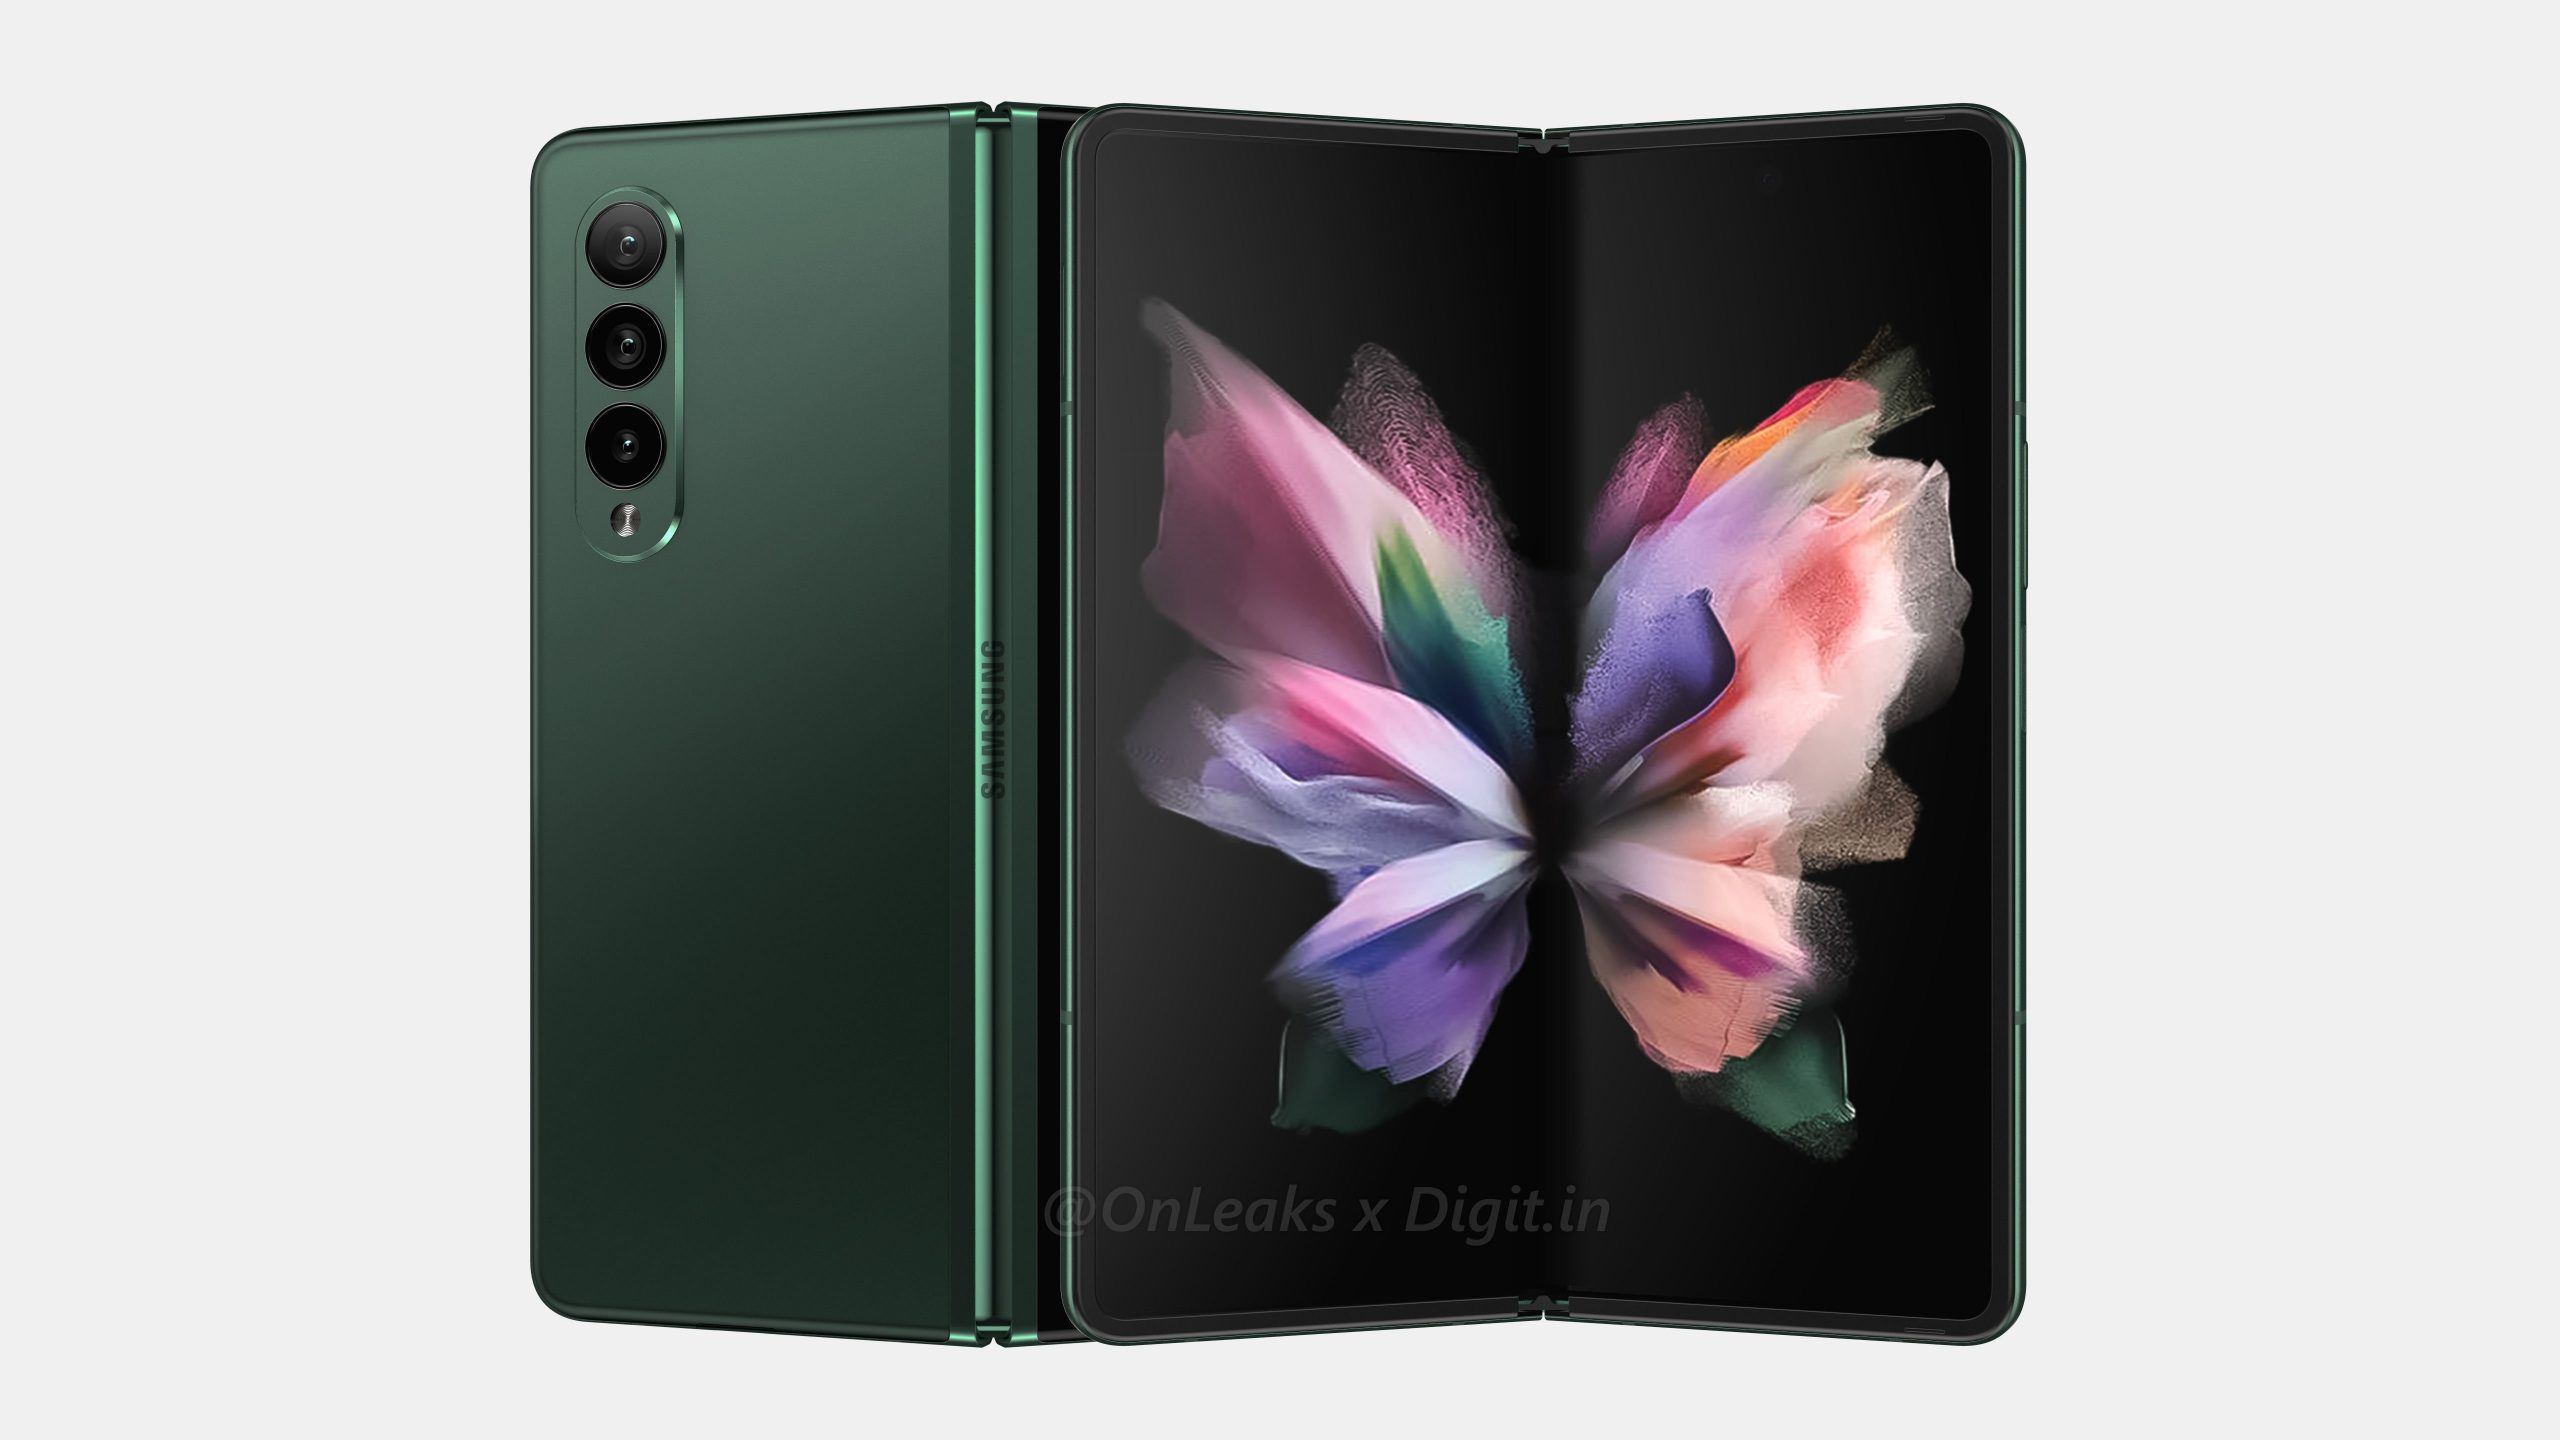 Samsung Galaxy Z Fold 3 Announced With S-Pen Support and IPX8 Water Resistance